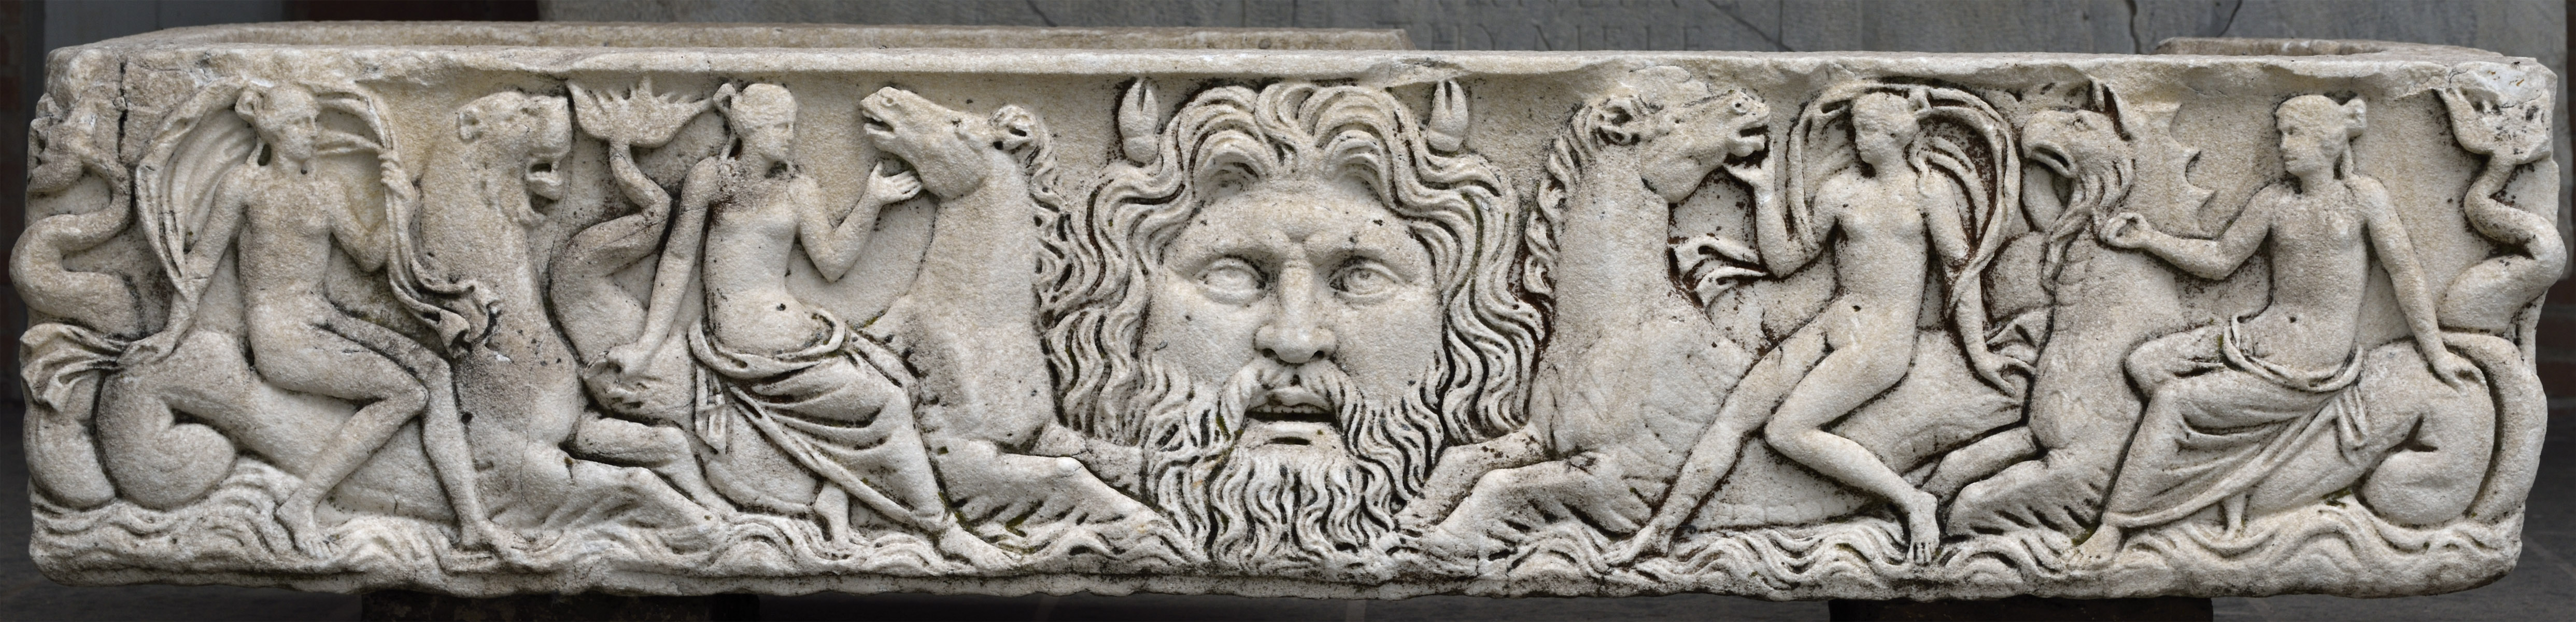 Sarcophagus with representation of marine thiasos and a head of Poseidon. Marble. 2nd—3rd cent. CE. Ostia, Archaeological Museum